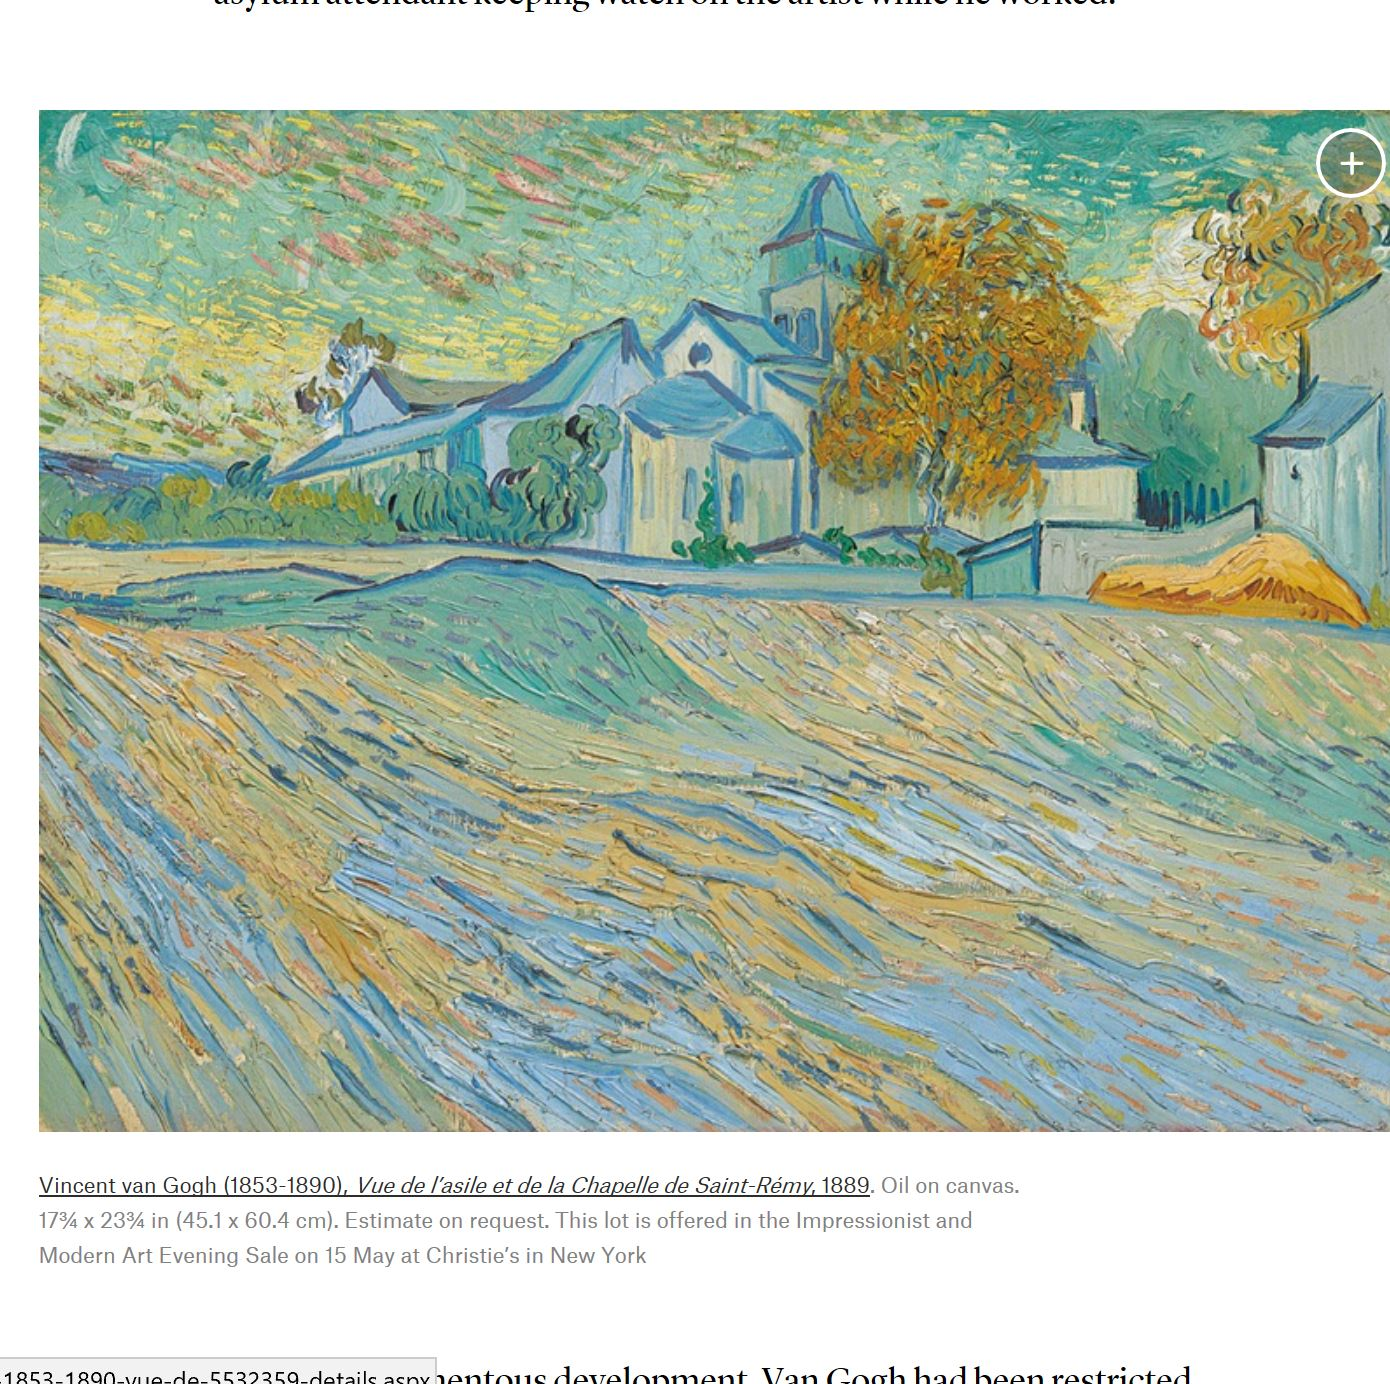 Sw Blogs Art Law Report Margarethe Mauthner Virus Text On Circuit Board Stock Photo Getty Images The 2nd Pulls Back Reach Of Fsia Upholds Dismissal Claim Against Switzerland For Van Gogh Drawing